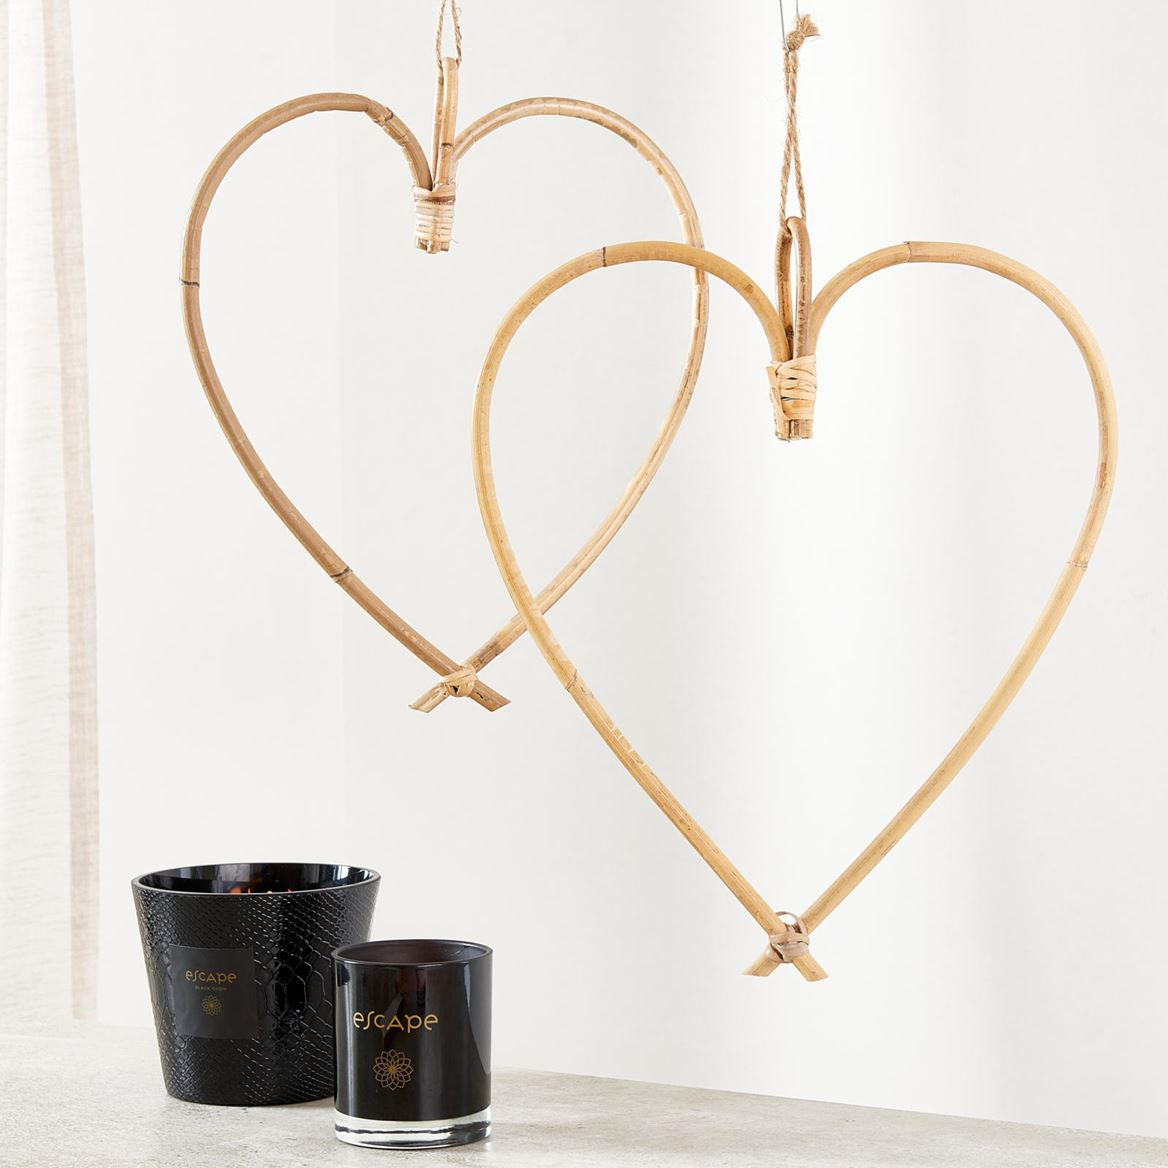 HEART Hangdecoratie naturel H 37 x B 33 cm_heart-hangdecoratie-naturel-h-37-x-b-33-cm